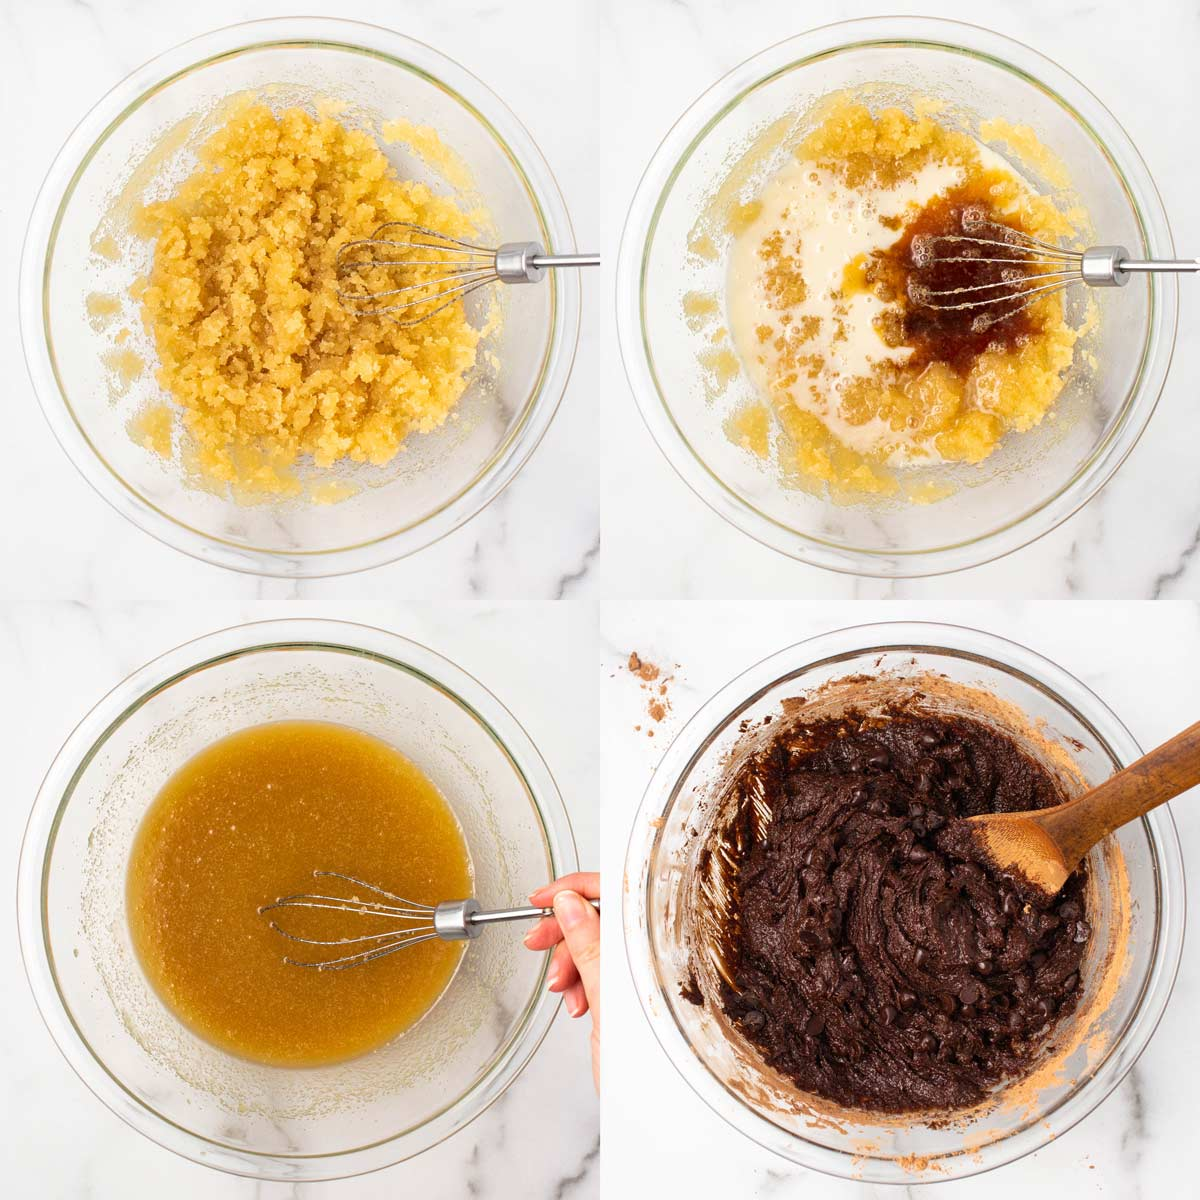 4 images showing a step-by-step of making vegan brownie batter. Top left: butter and sugar mixed together. Top right: milk and vanilla added. Bottom left: All wet ingredients mixed. Bottom right: Dry ingredients mixed into wet.